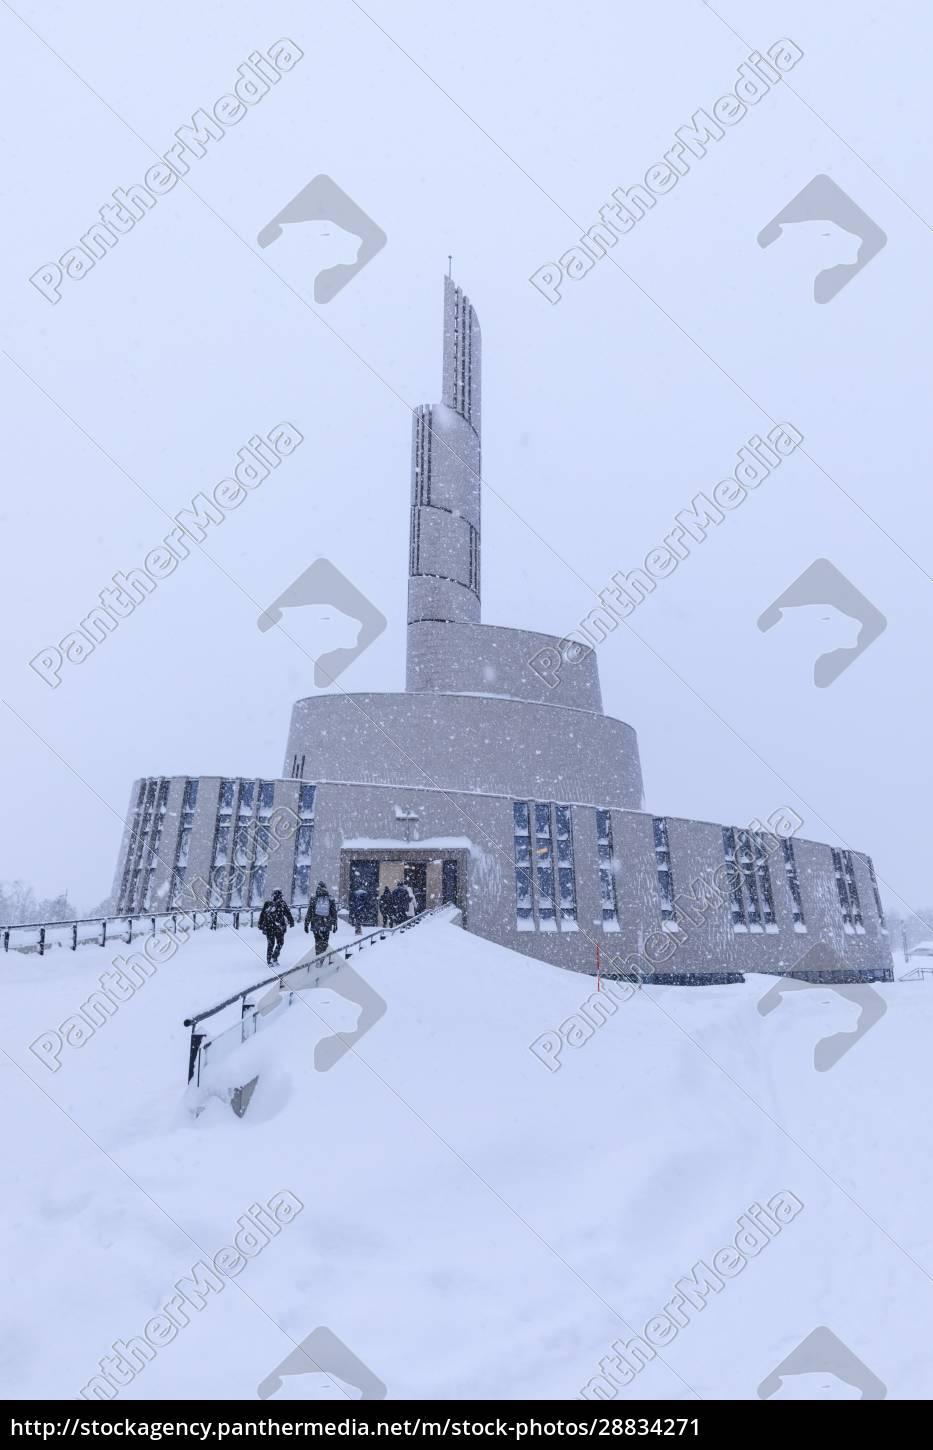 northern, lights, cathedral, , striking, architecture, , snow - 28834271